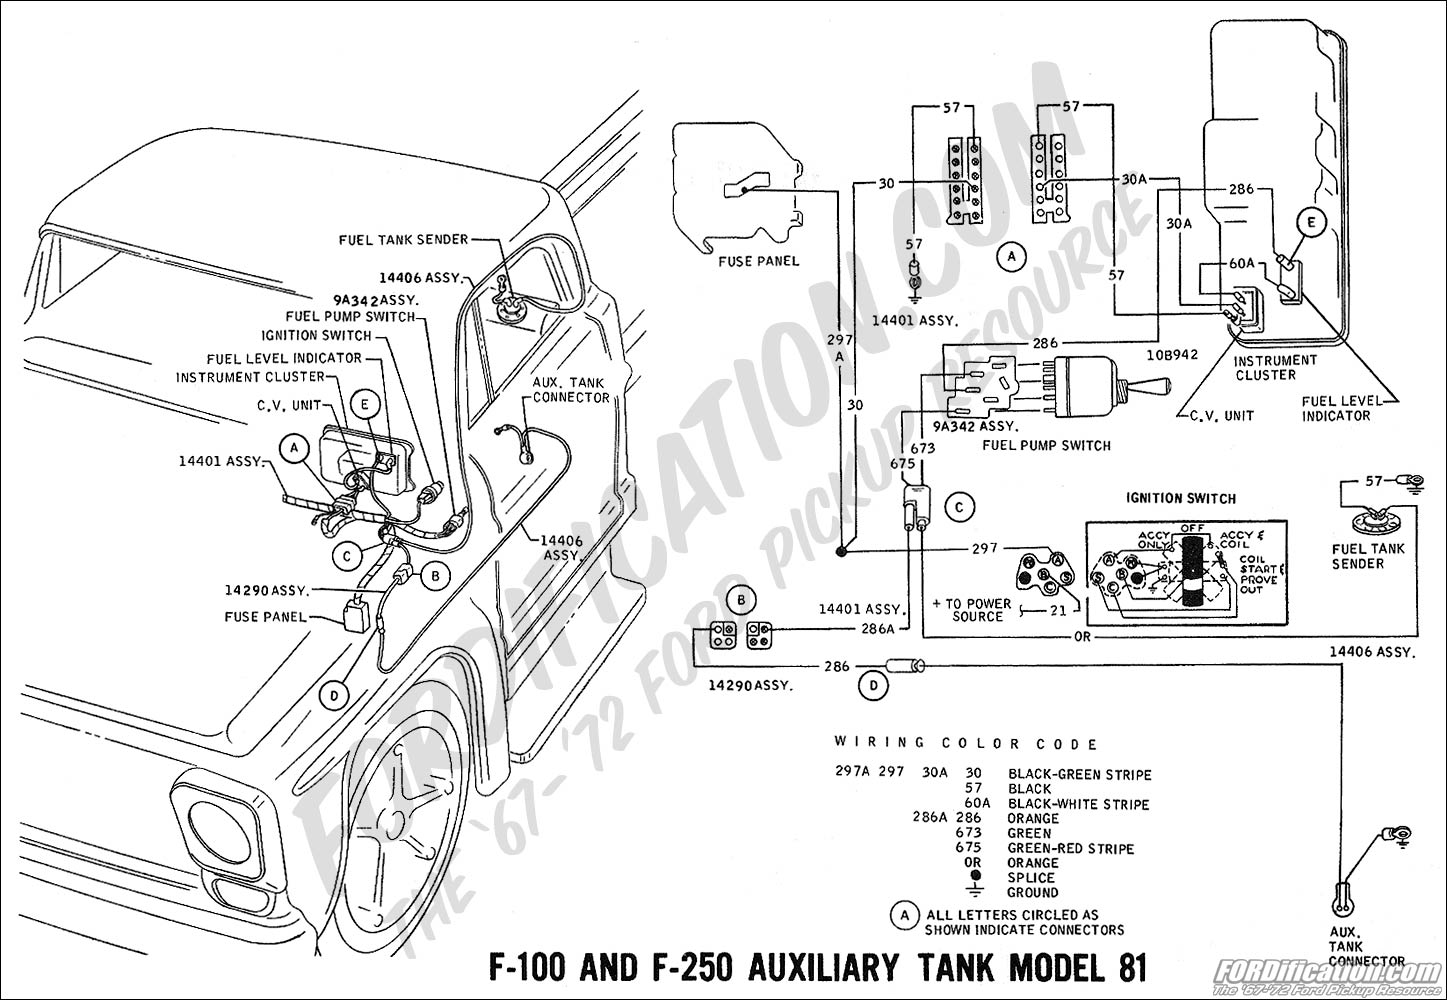 1975 Ford F100 Dash Wiring Diagram F500 1988 Detailed1988 Jeep Tail Light